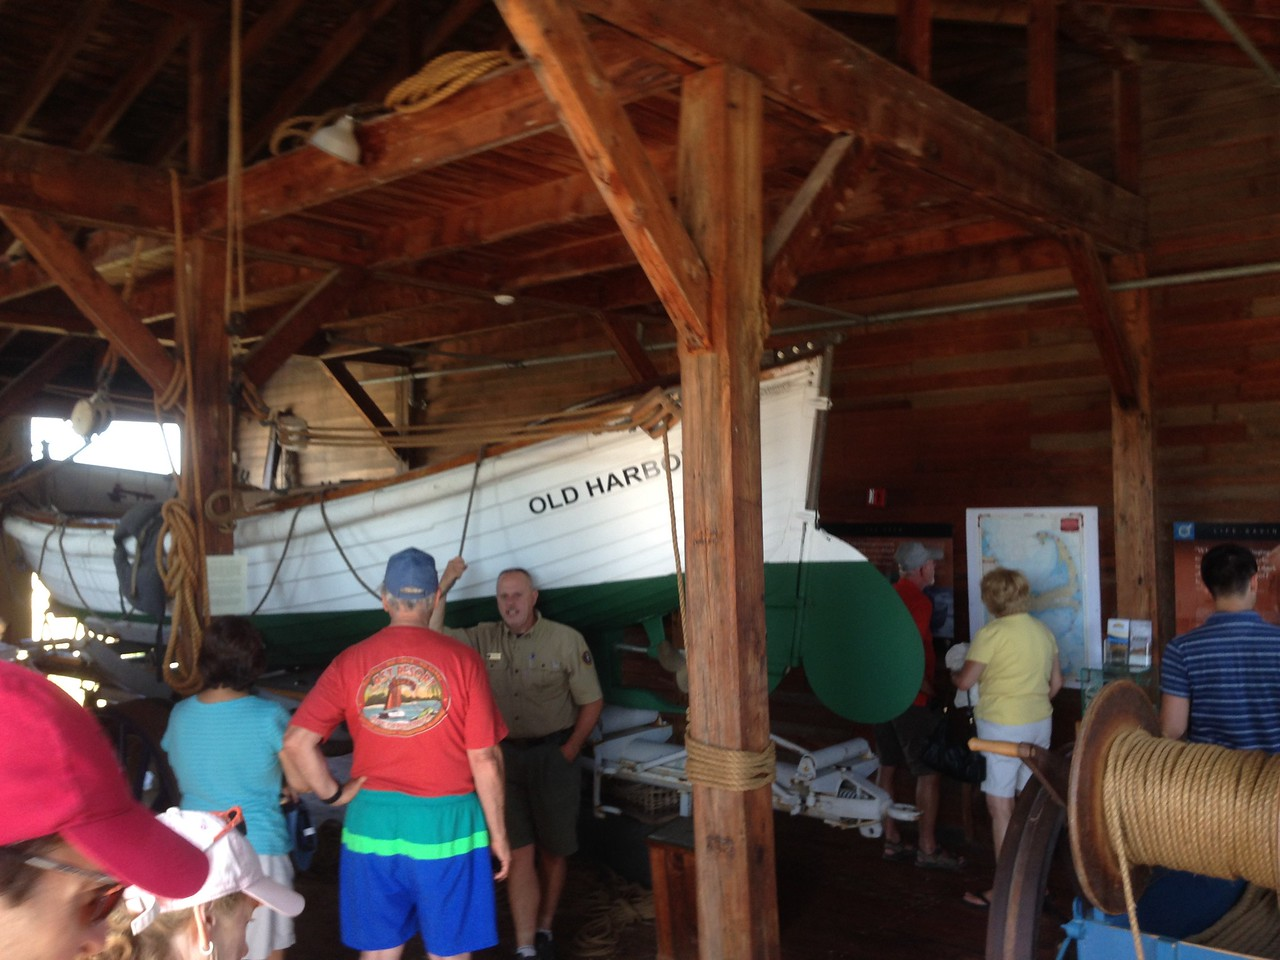 The station was open so we got to see all the boats and the newly renovated interior!